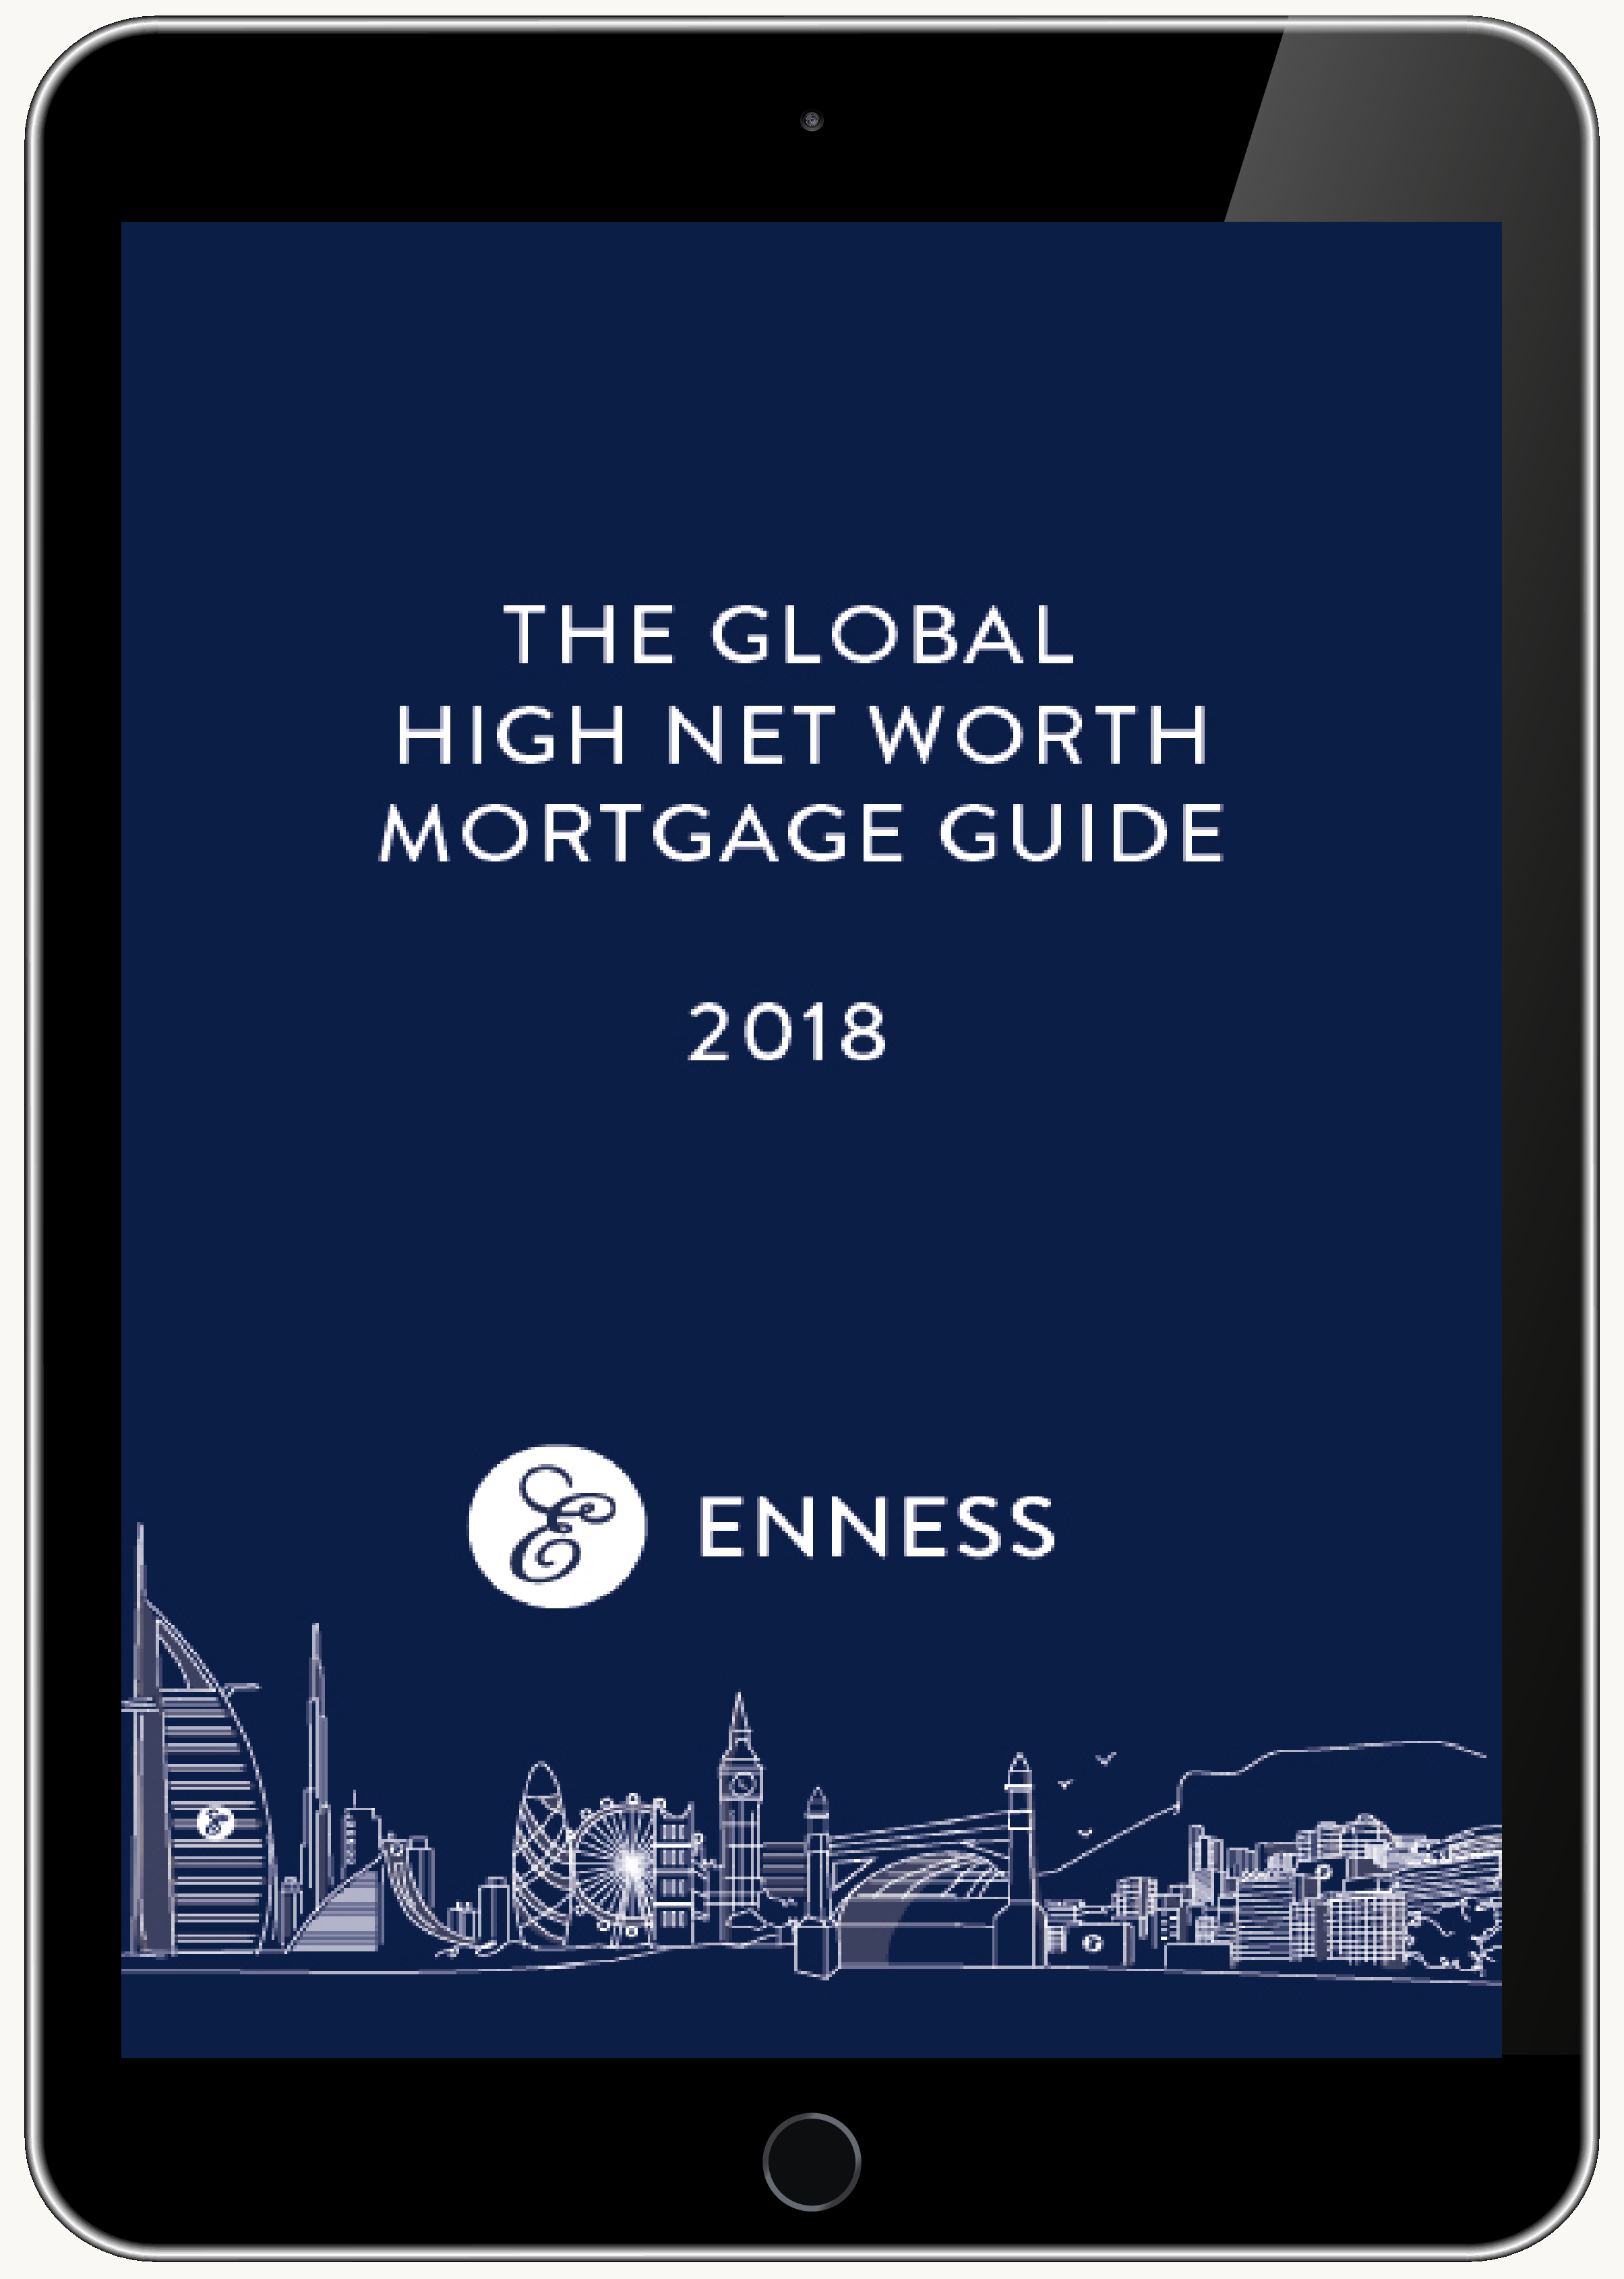 GHNW MORTGAGE GUIDE